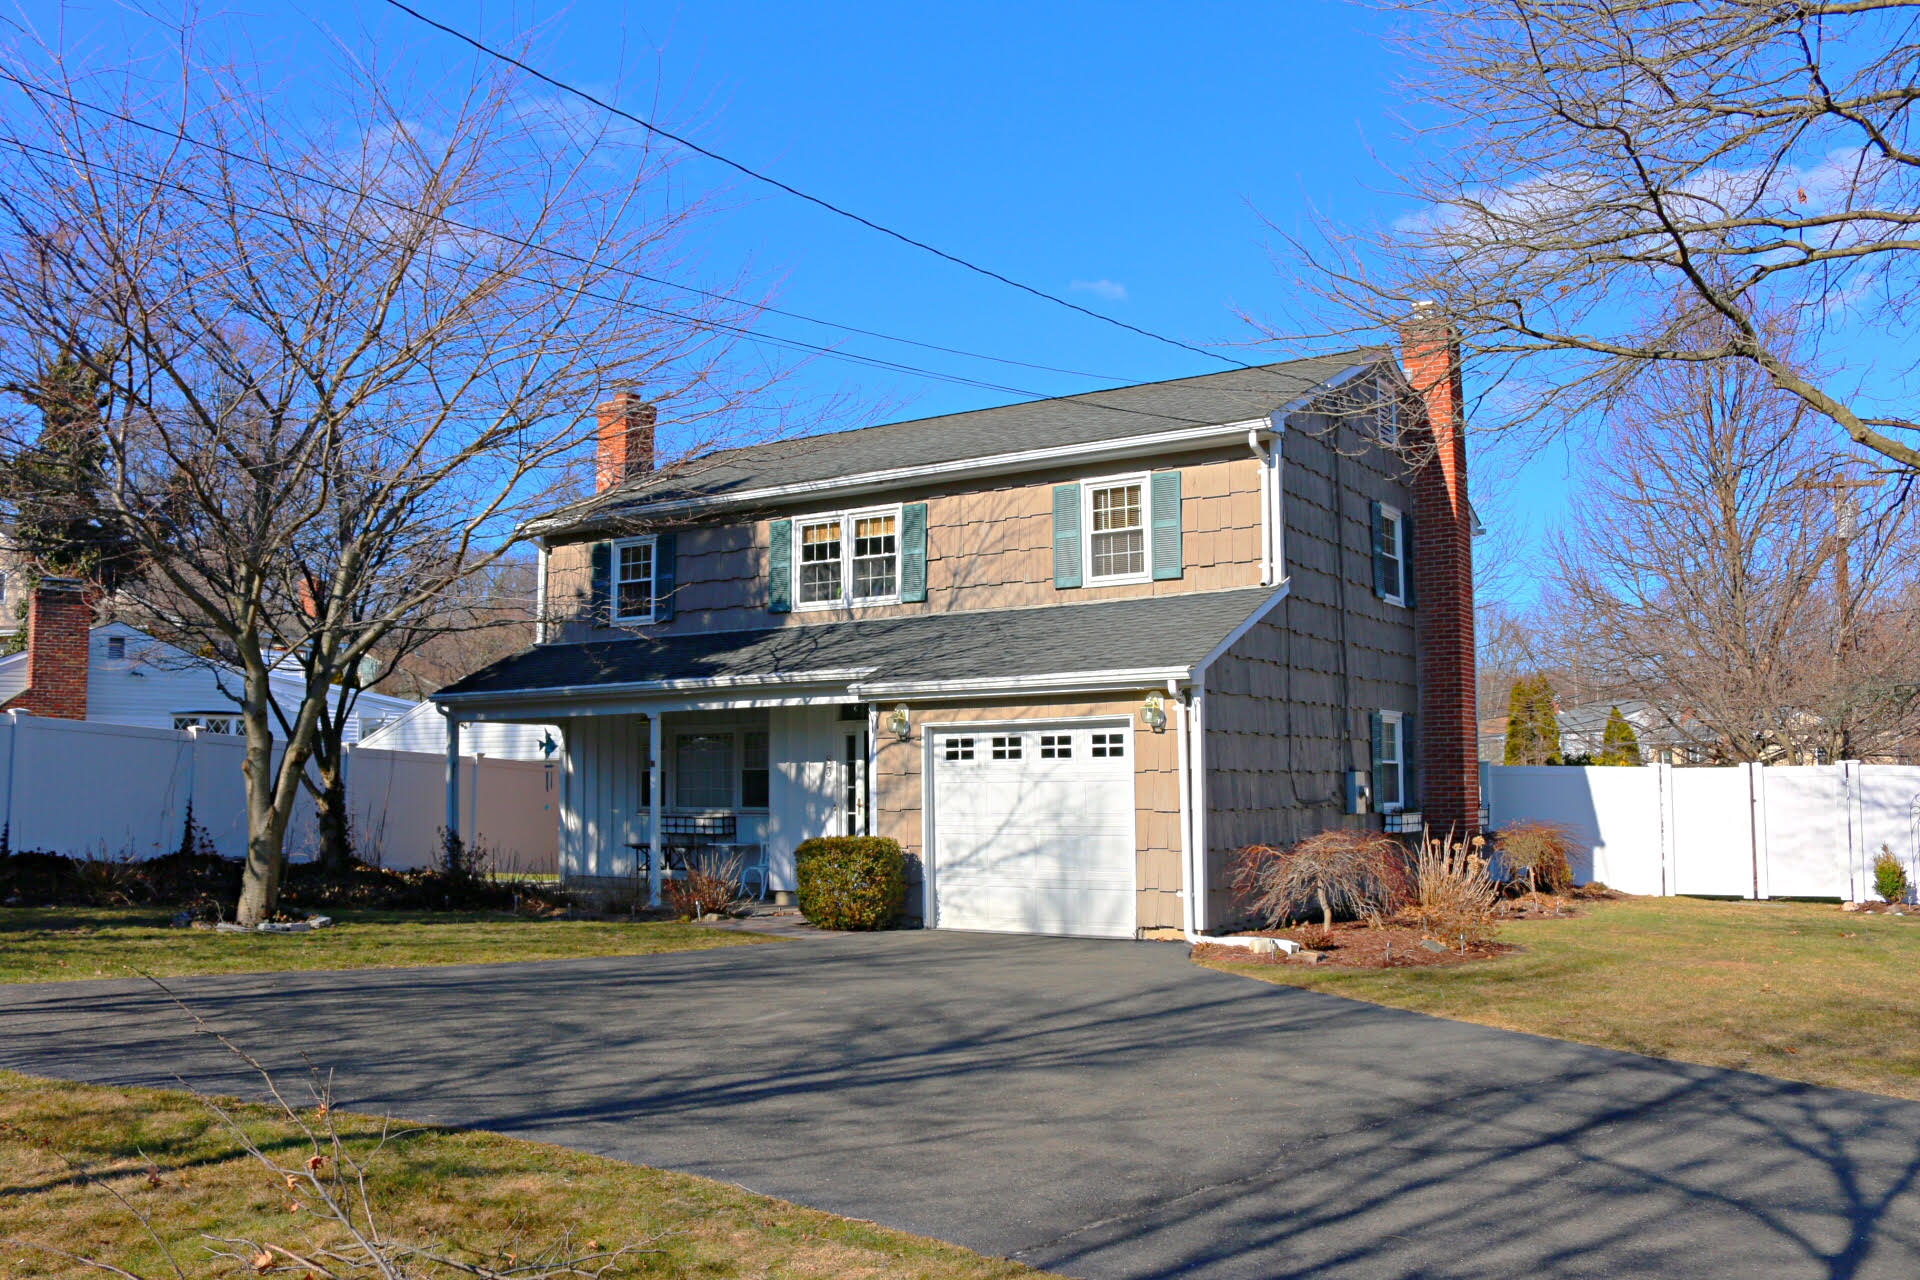 Single Family Home for Sale at Charming Cozy Colonial 83 Lancer Road Riverside, Connecticut, 06878 United States